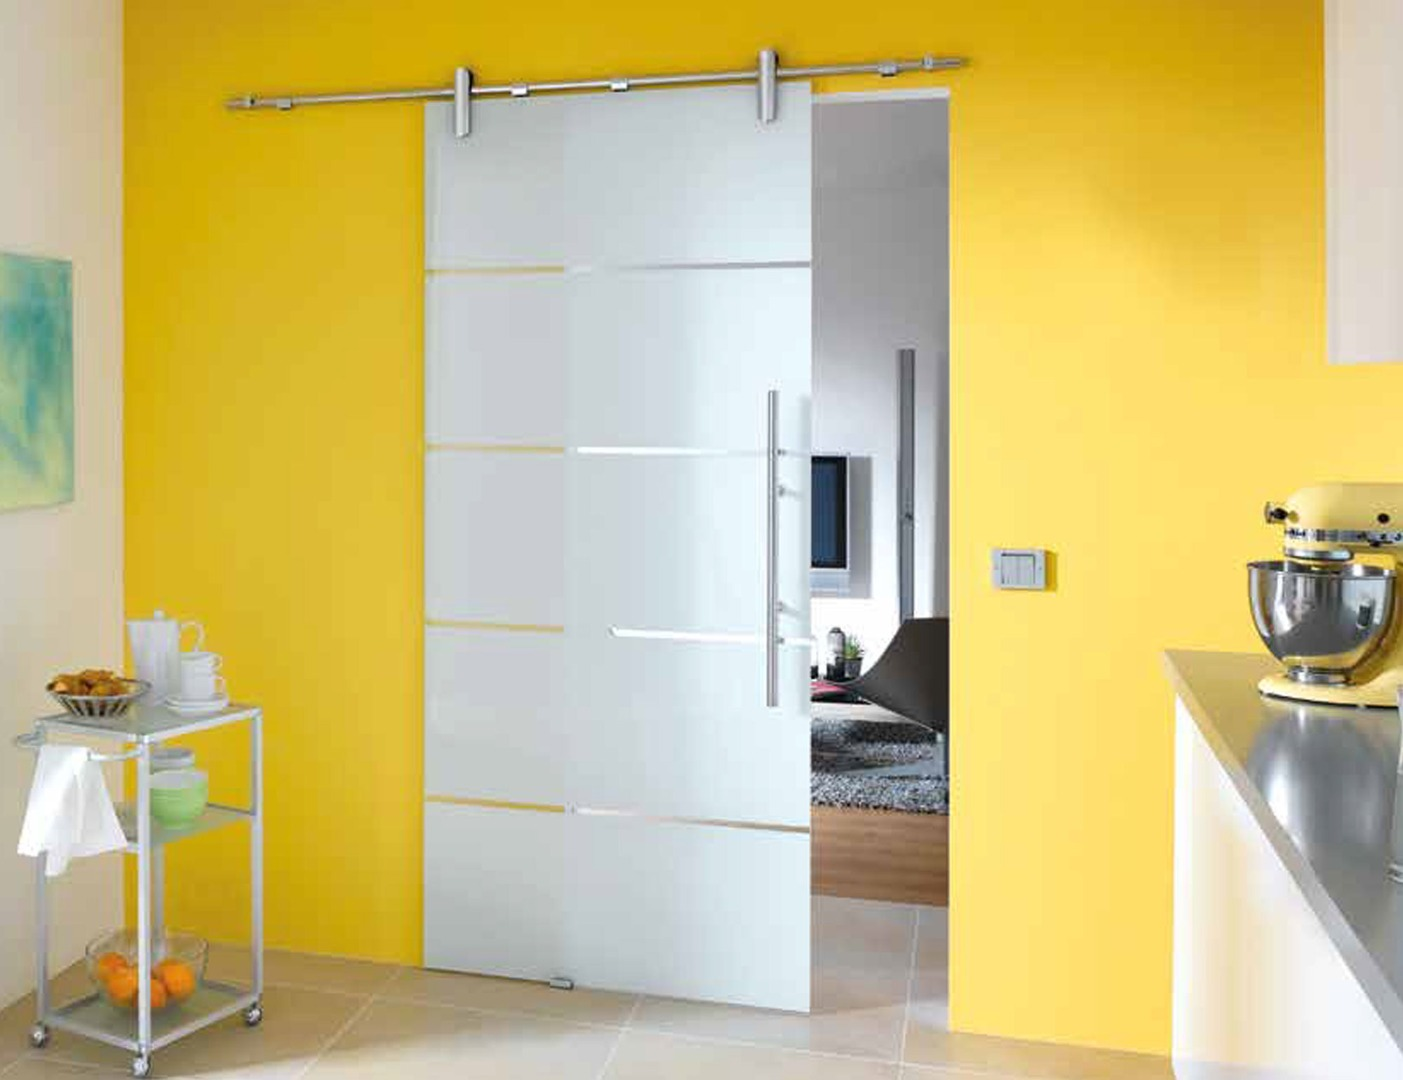 Atos Glass Door Design - Glass Sliding Room Dividers